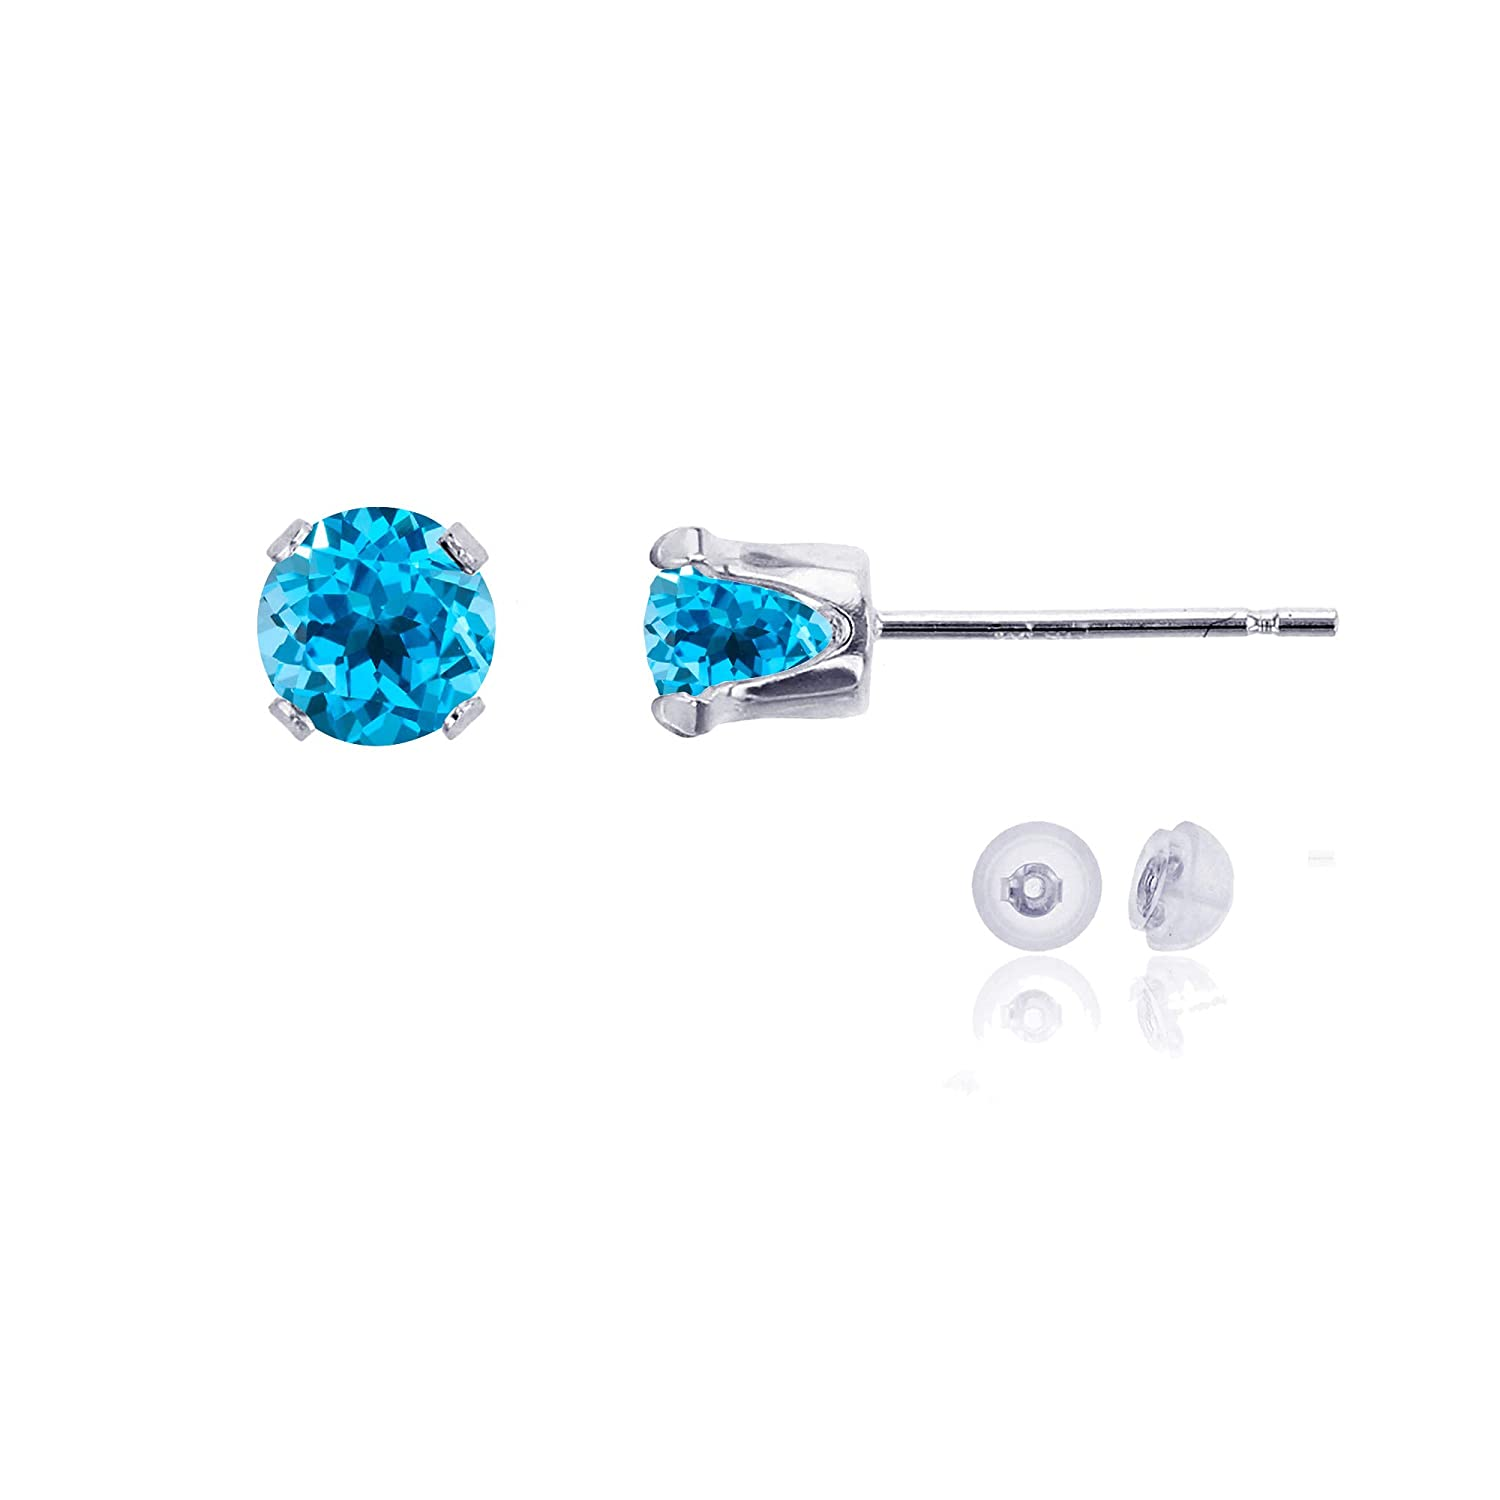 Solid 10K Gold Yellow White or Rose Gold 5mm Round Genuine Gemstone Birthstone Stud Earrings